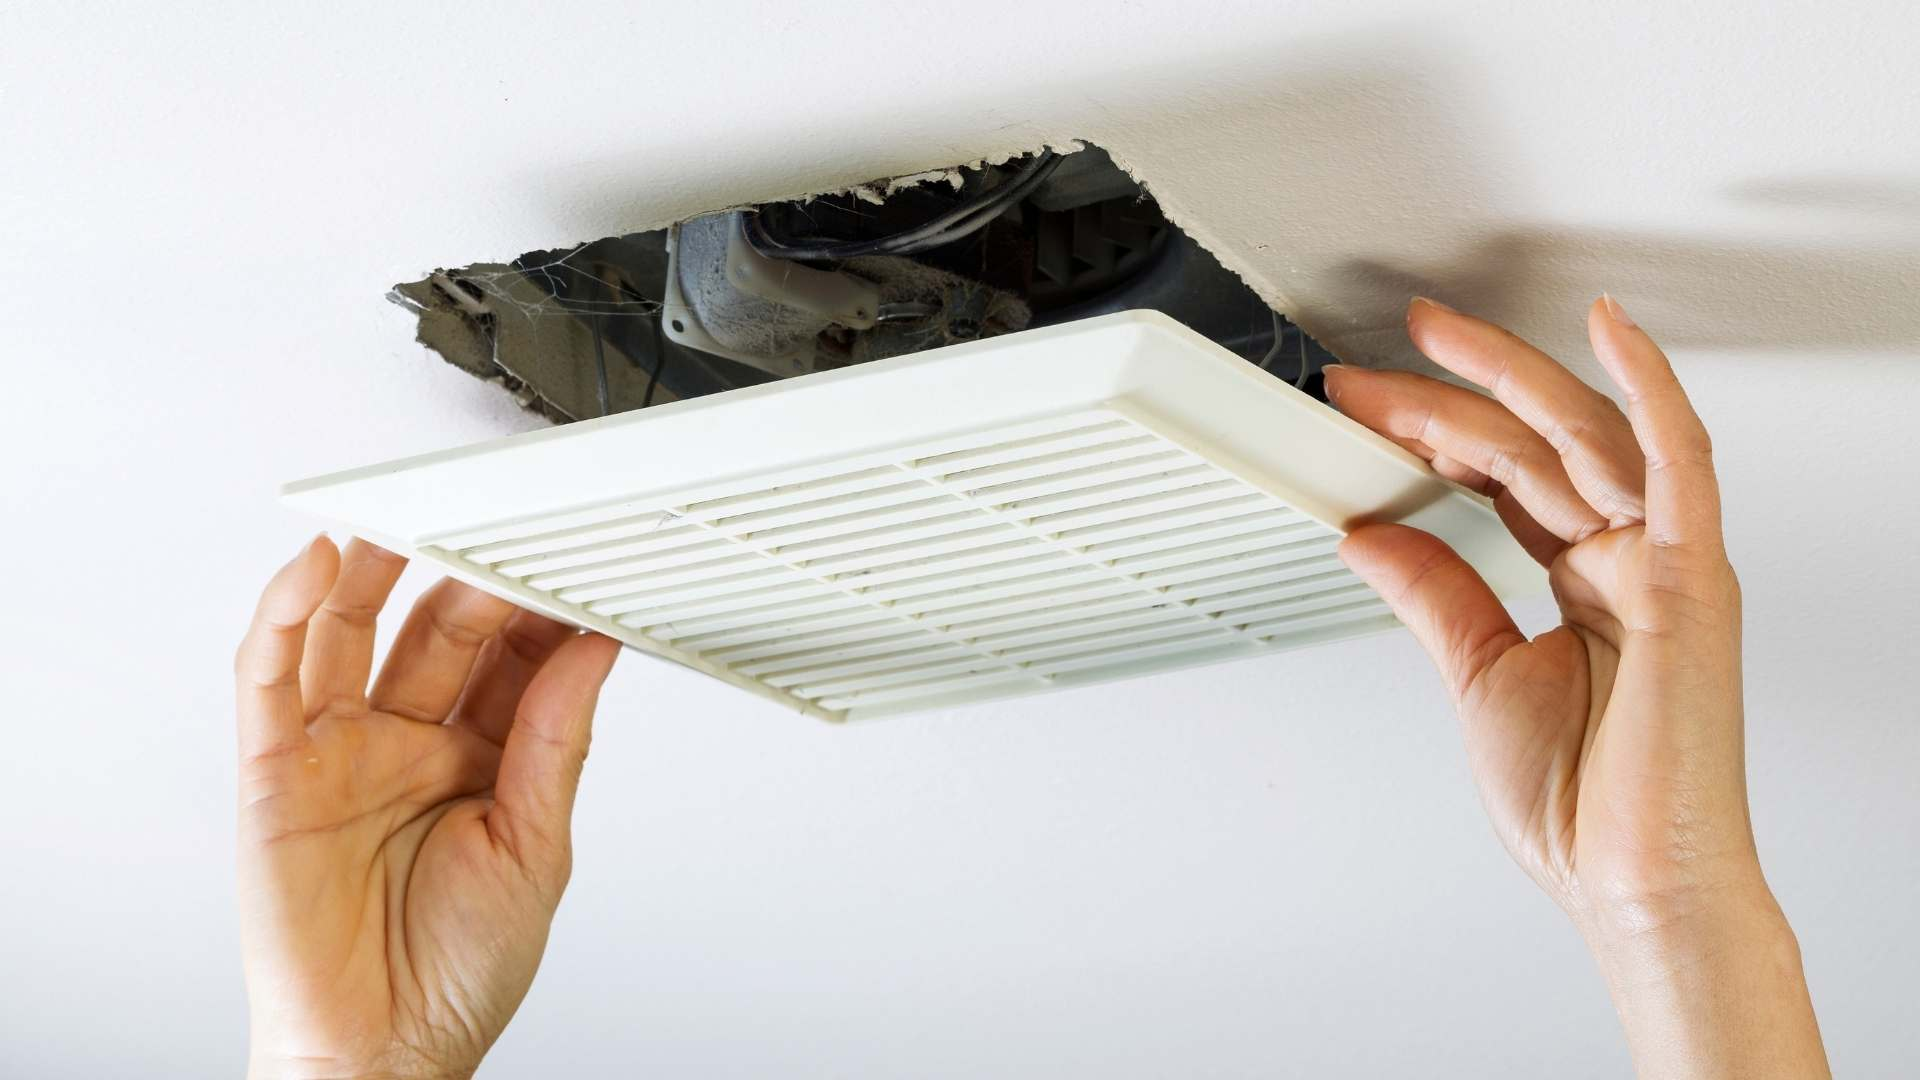 How To Clean Bathroom Vent(Update 2021)